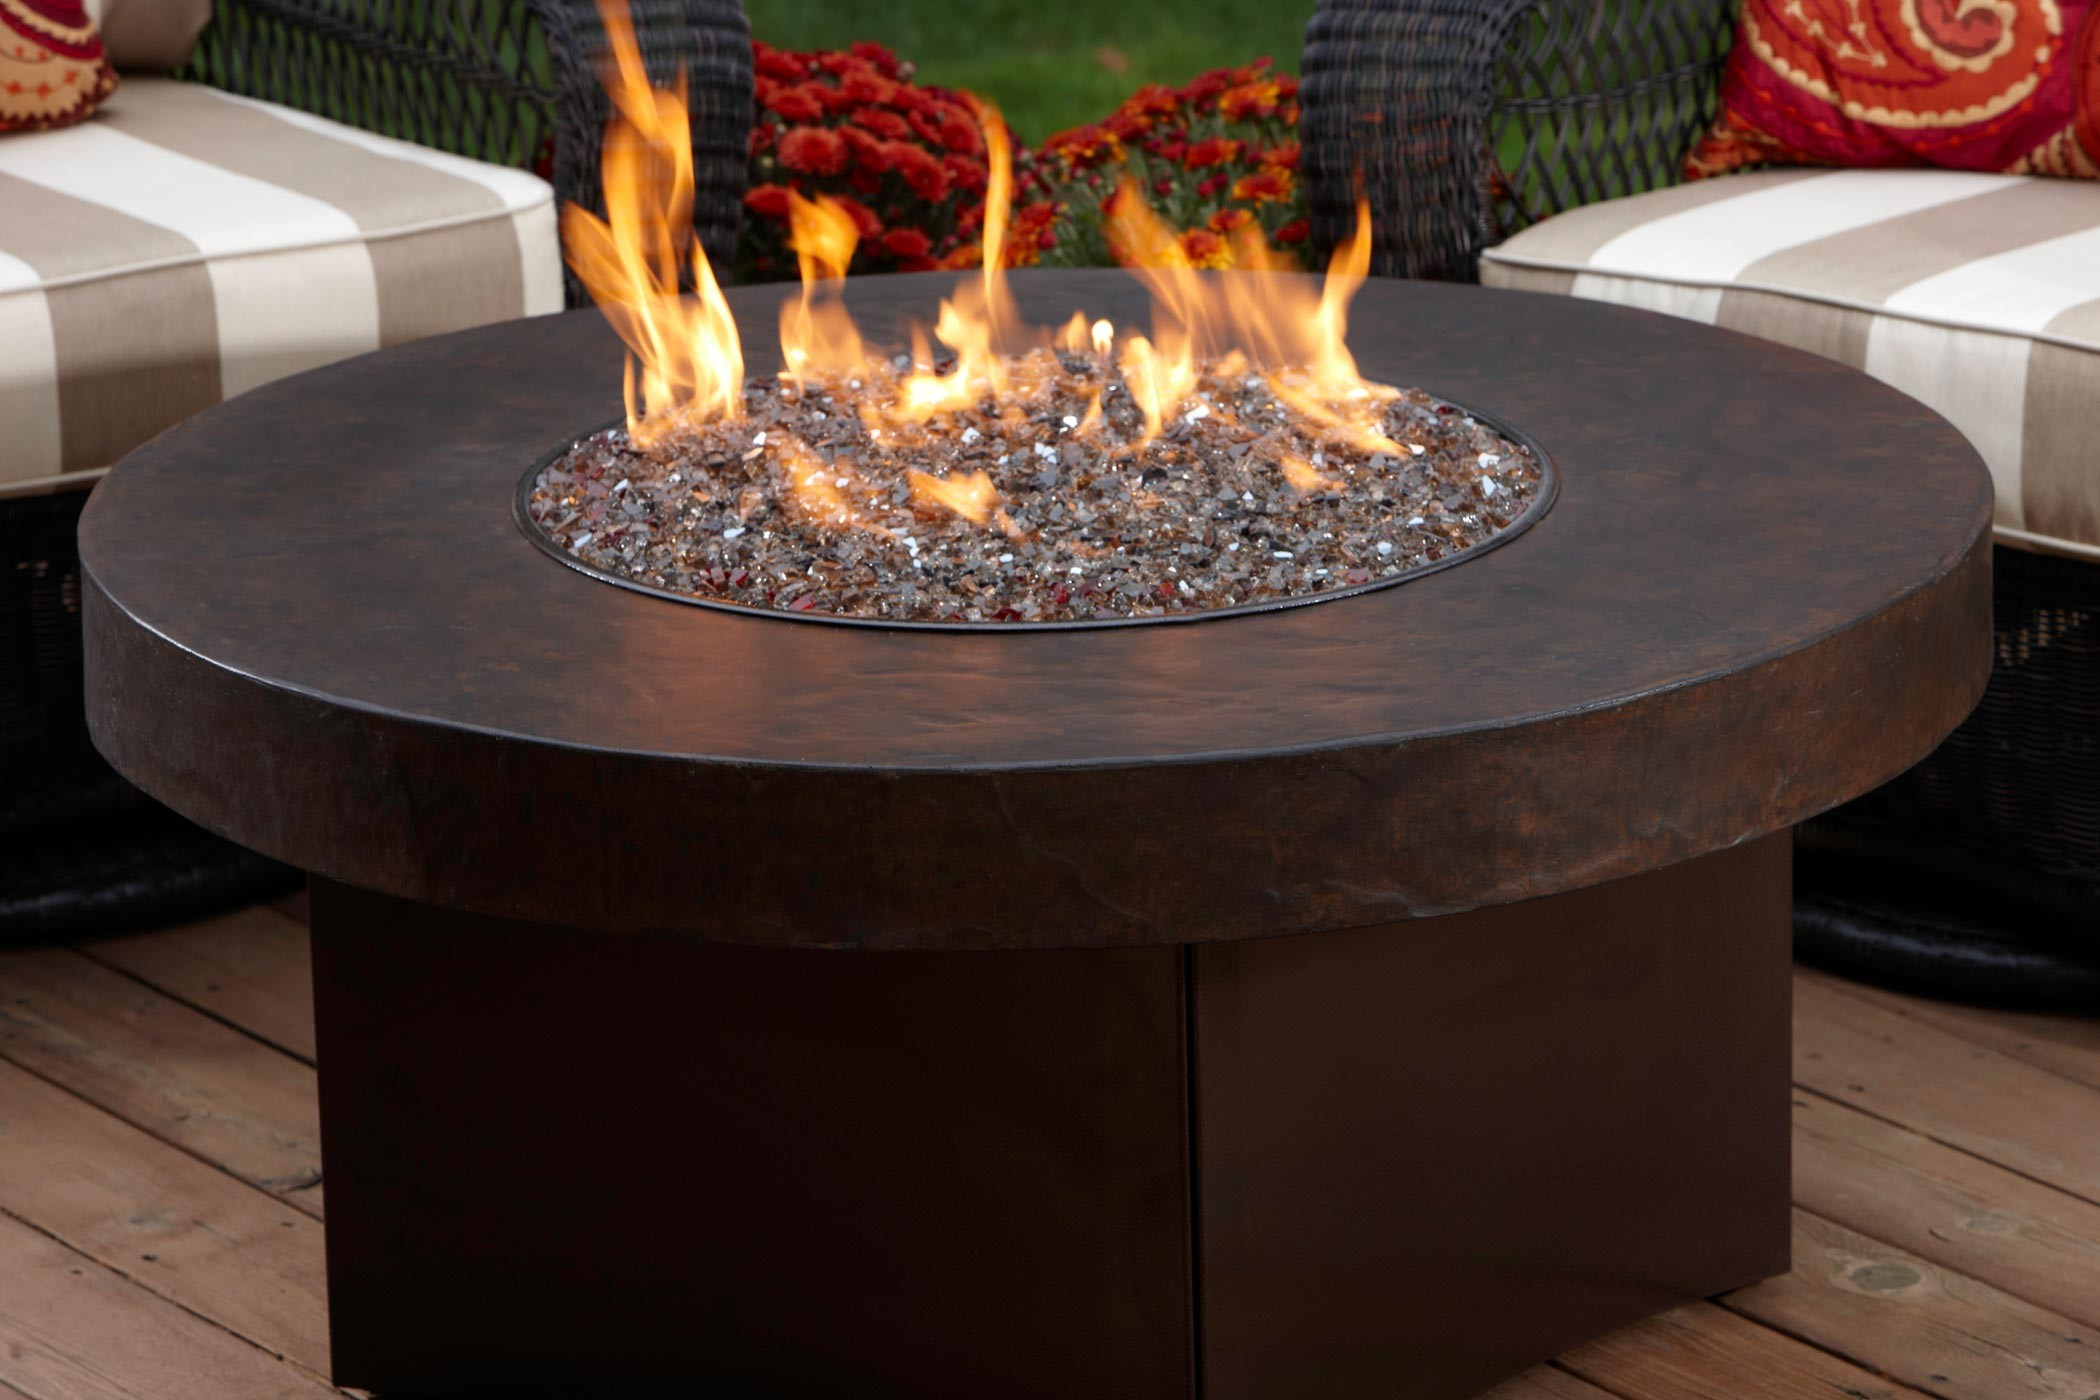 Fire Table Kit Ideas for Outdoor Patio   HomesFeed on Outdoor Gas Fireplace For Deck id=14217